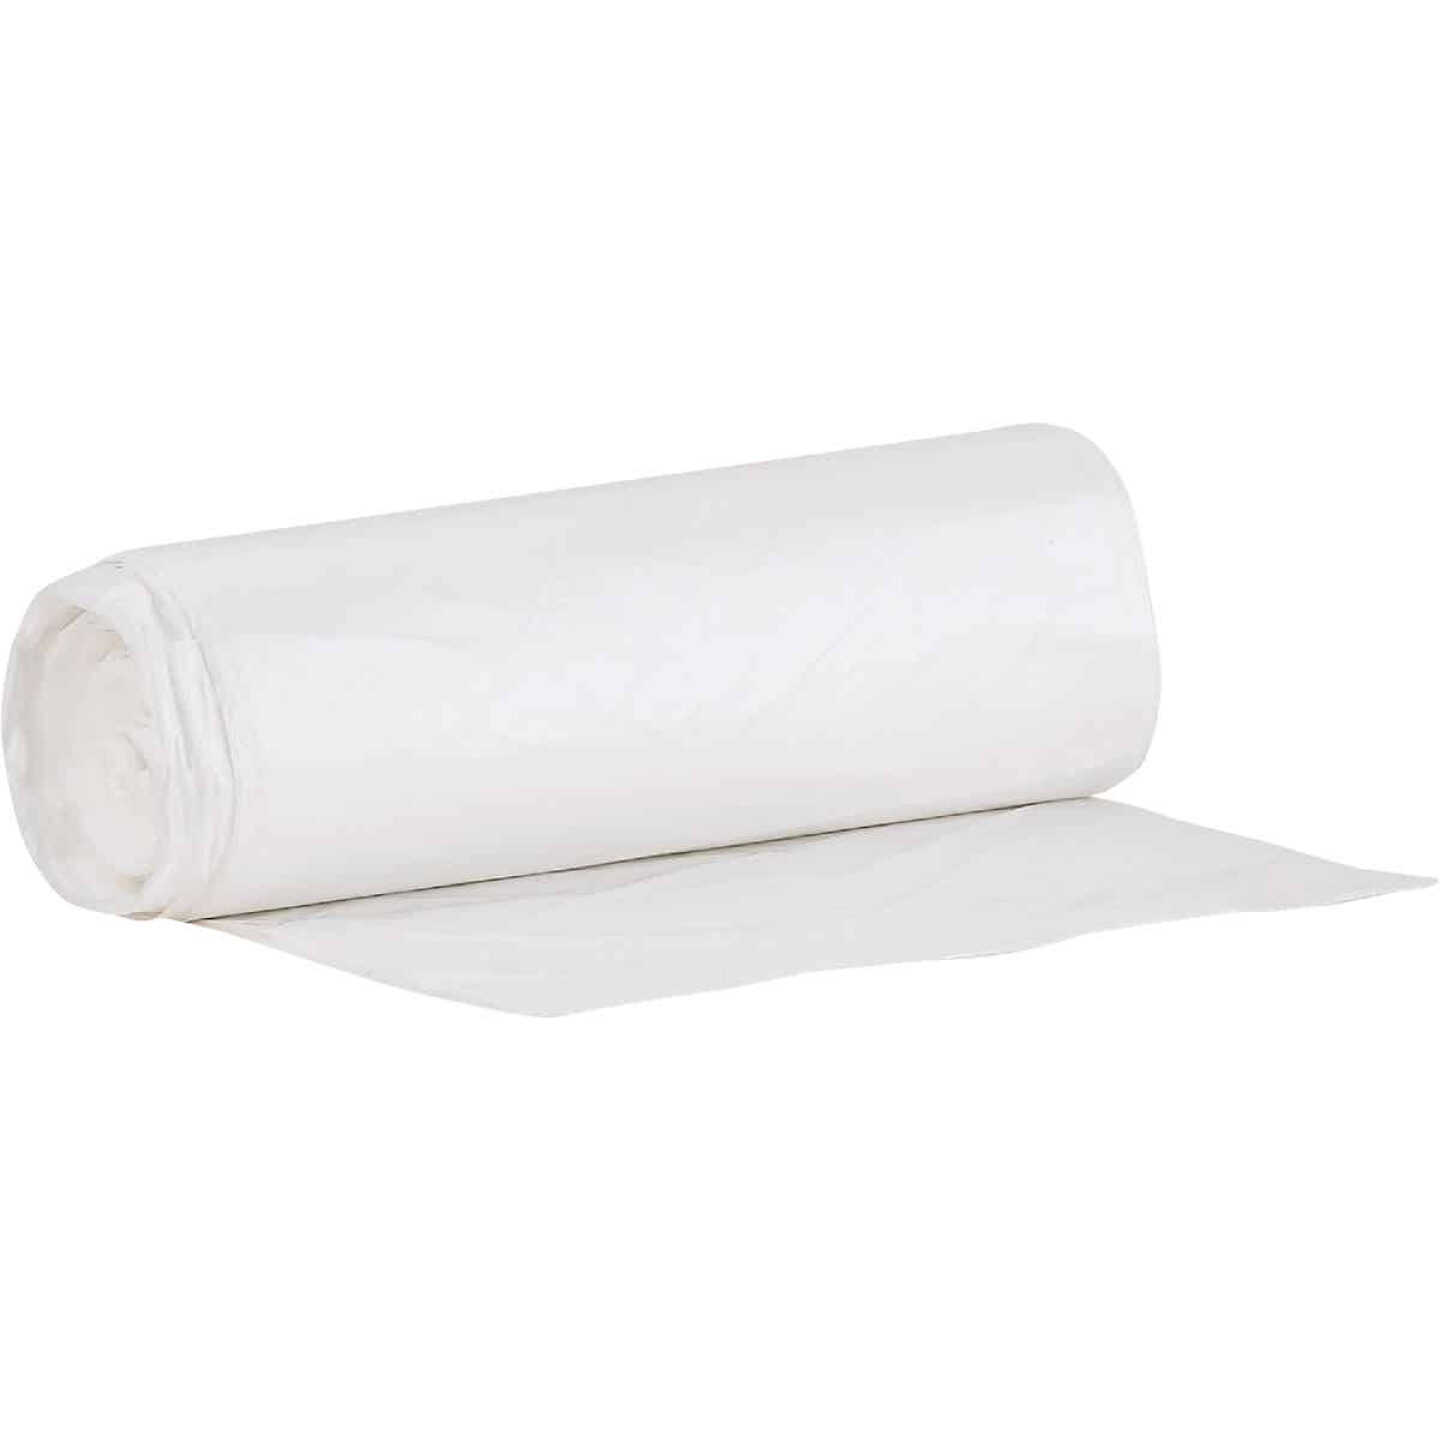 Performance Plus 56 Gal. Natural High Density Can Liner (200-Count) Image 1